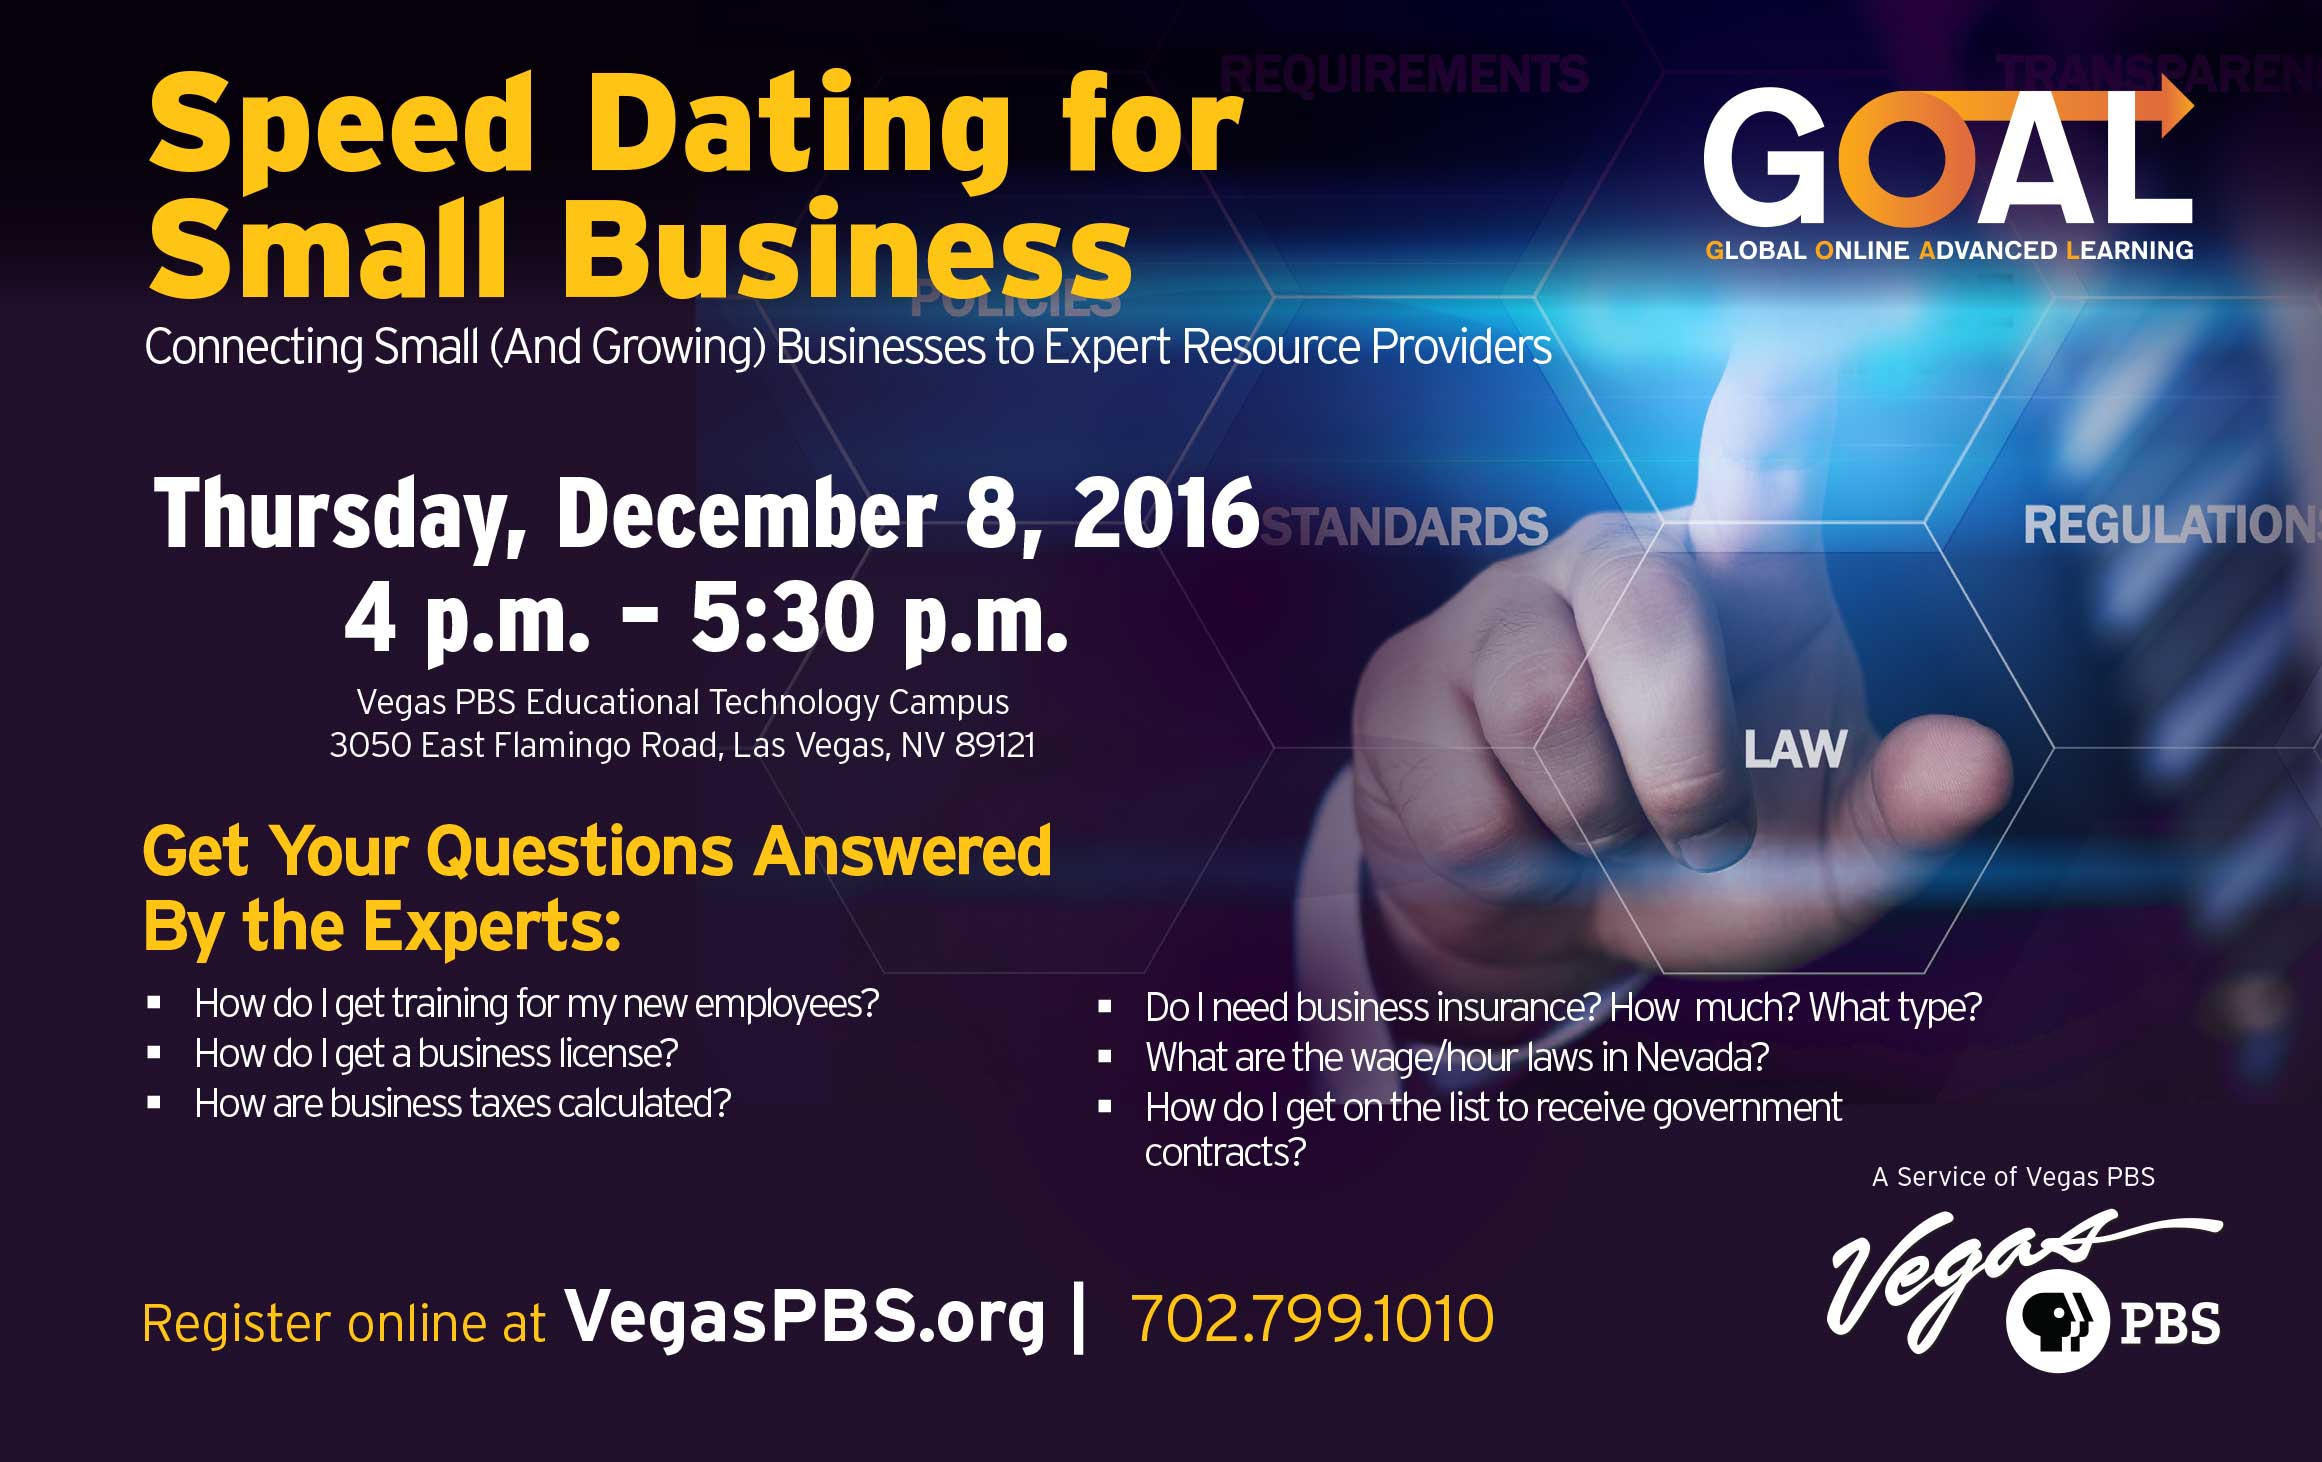 Speed Dating for Small Business